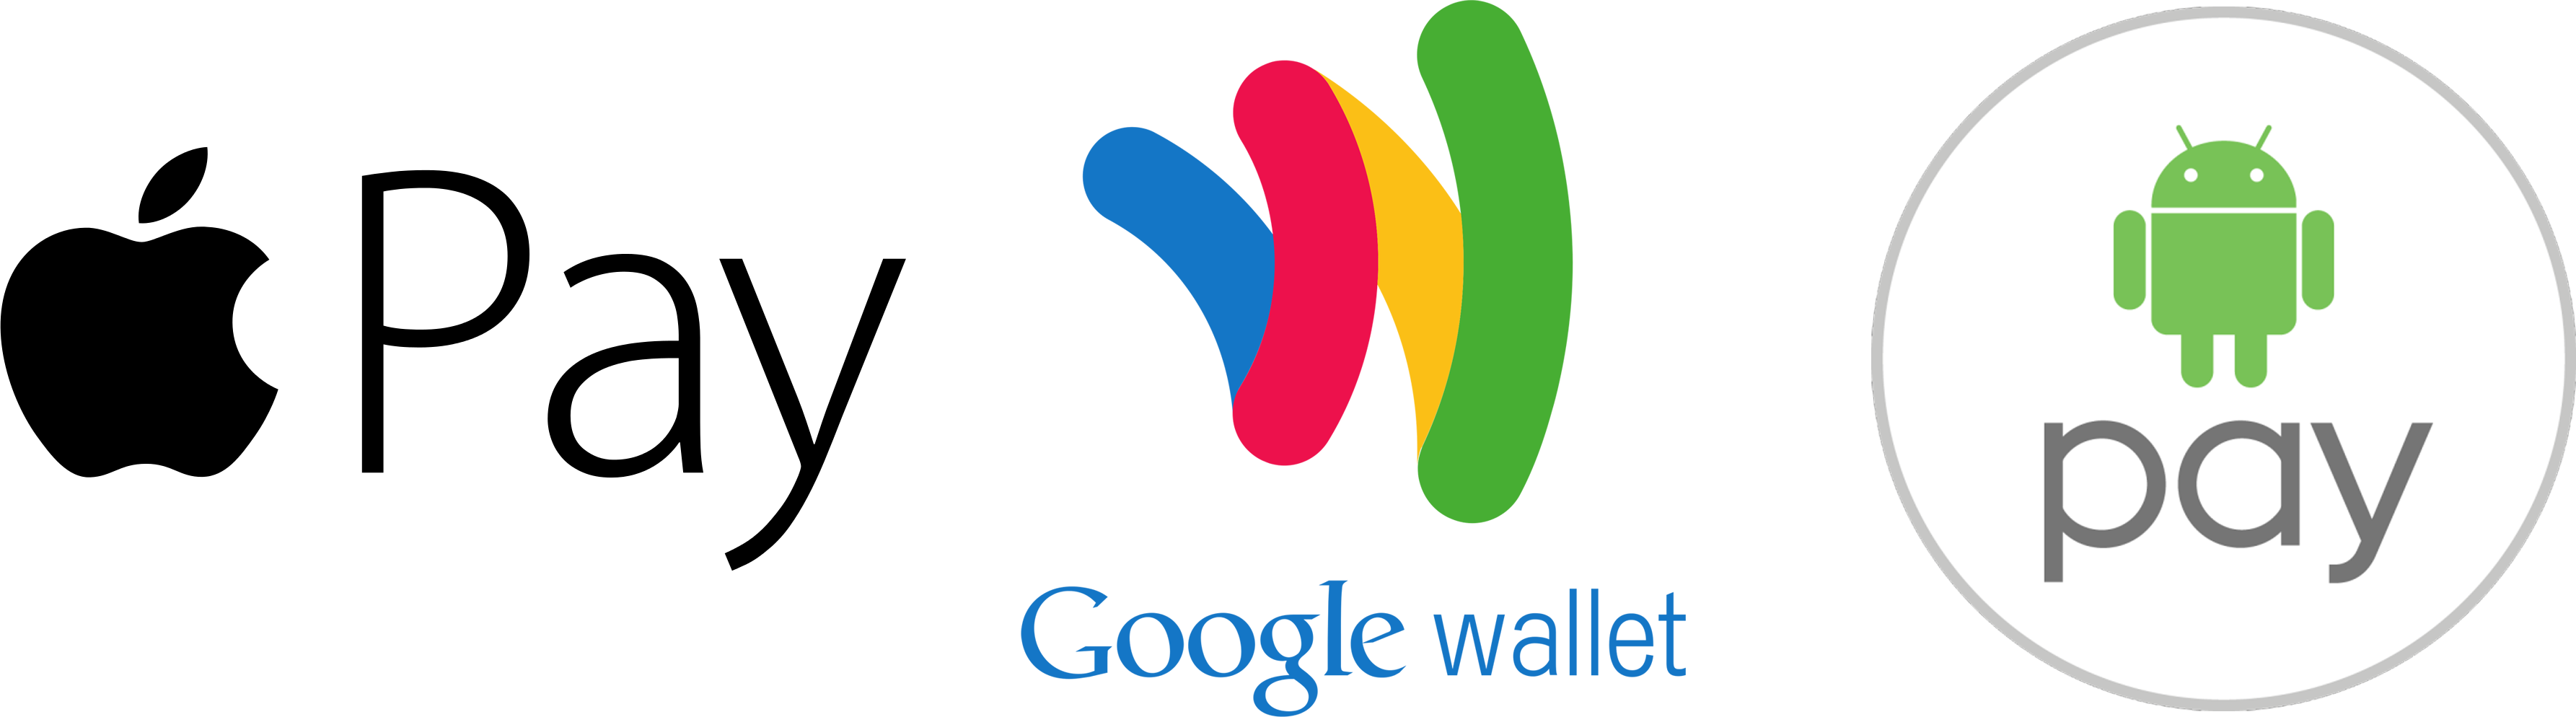 Apple pay logo png. Android logos